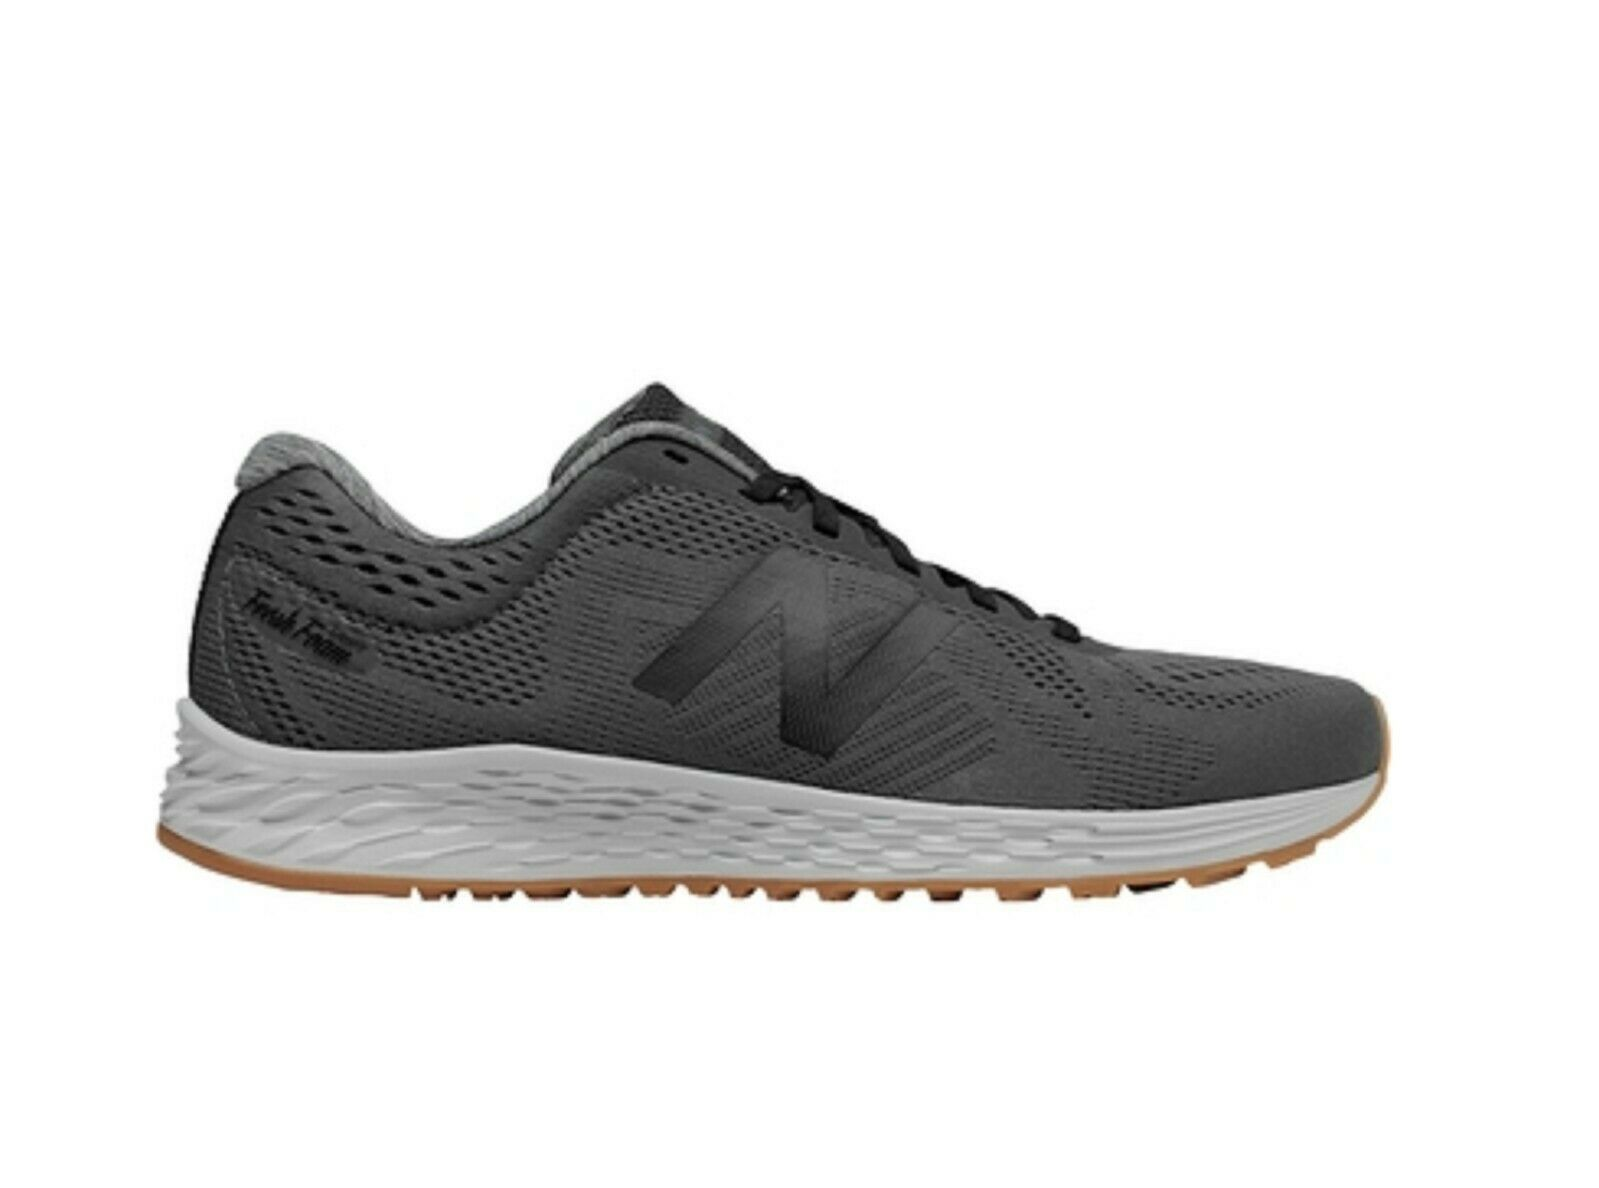 2c644d83 New Men's D 9.5 shoes Running Balance 17540ioyp7134-shoes - costume ...